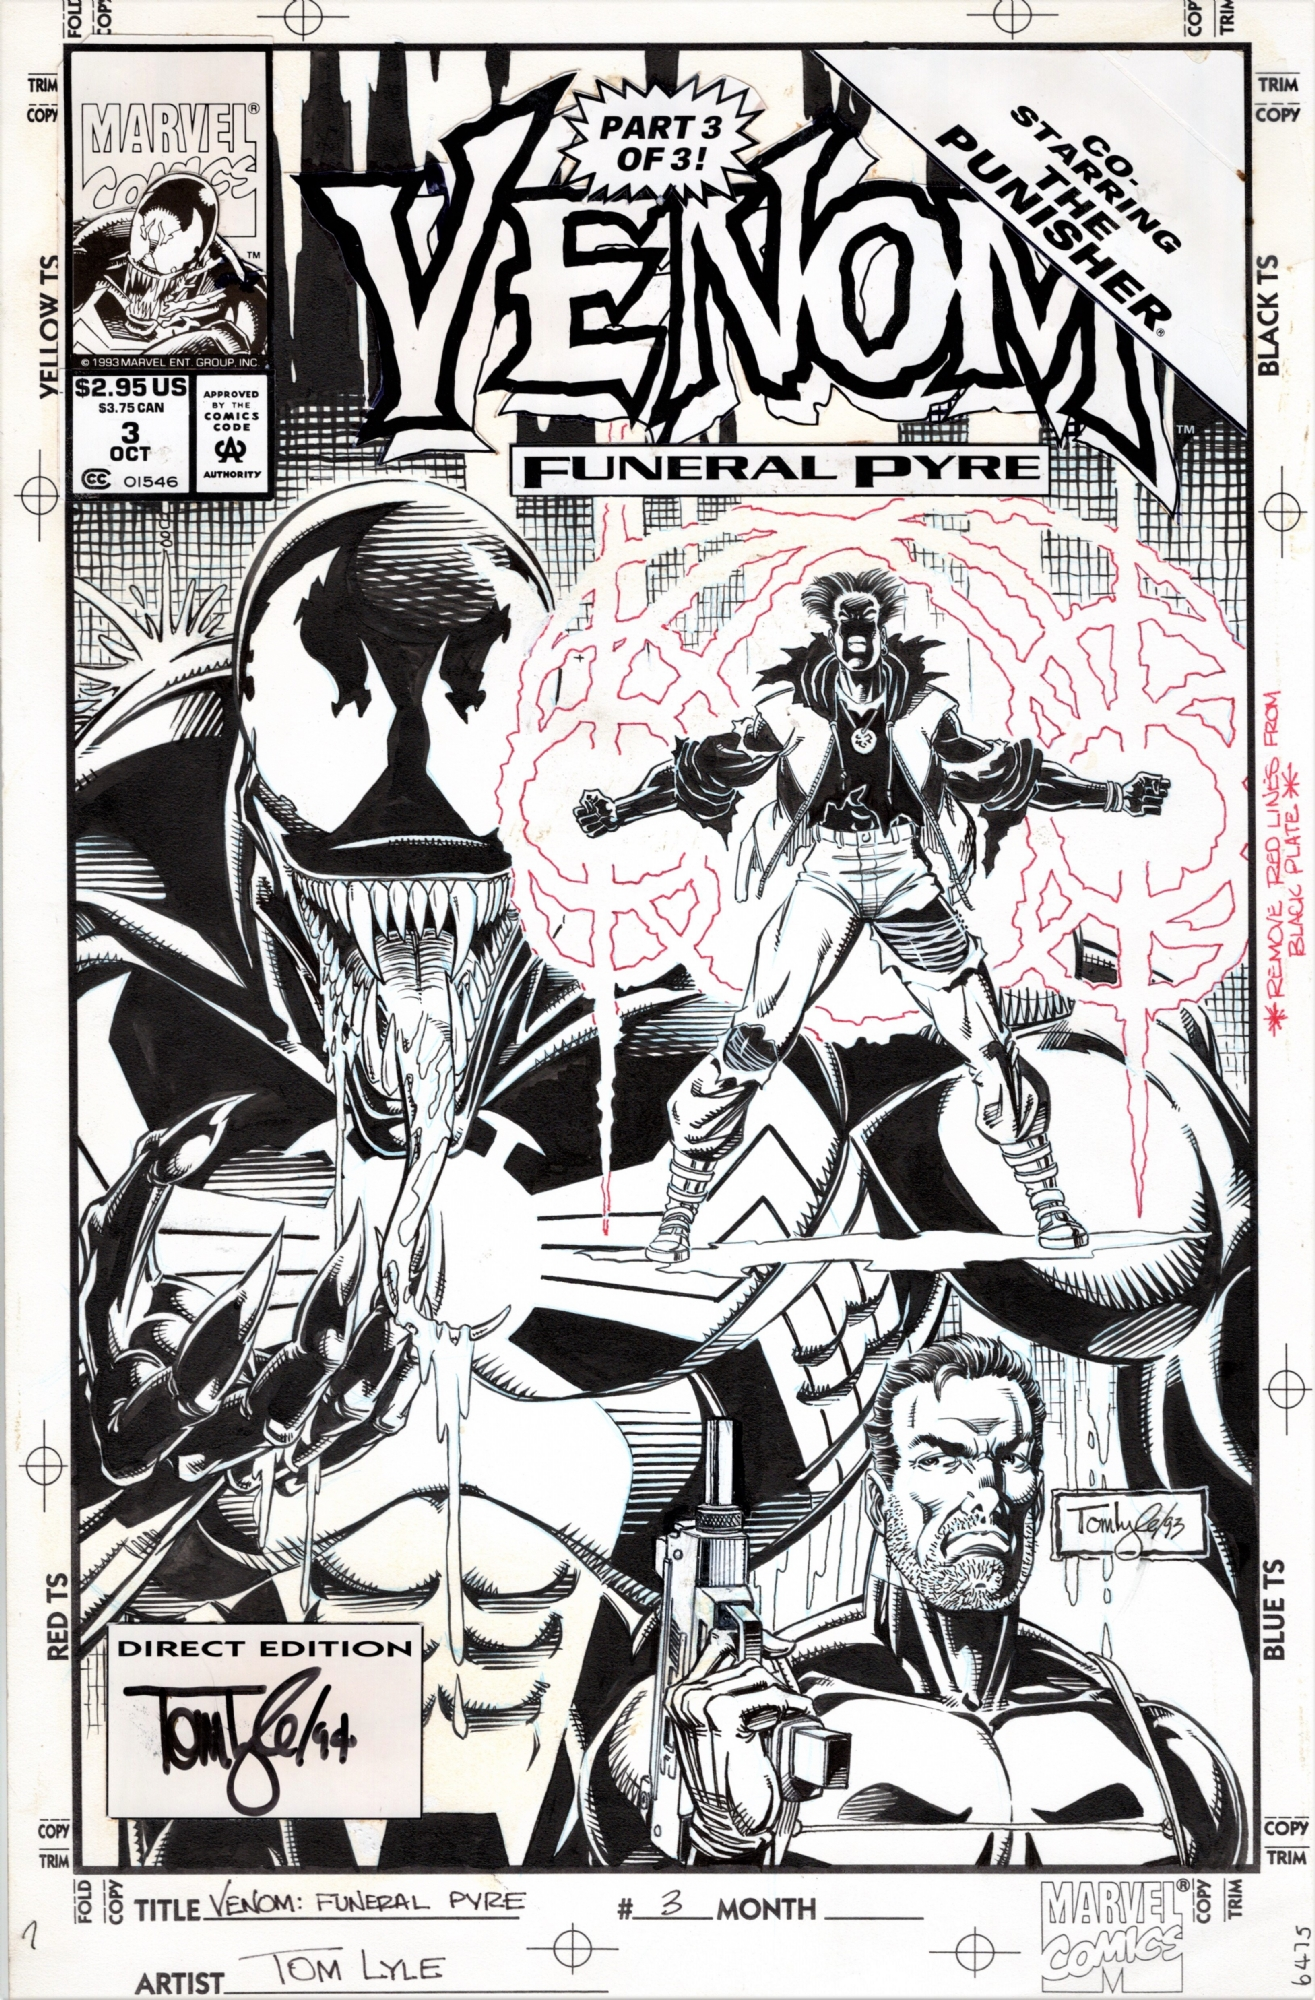 Venom: Funeral Pyre #3 COVER by Tom Lyle, 1993, in Paul P's